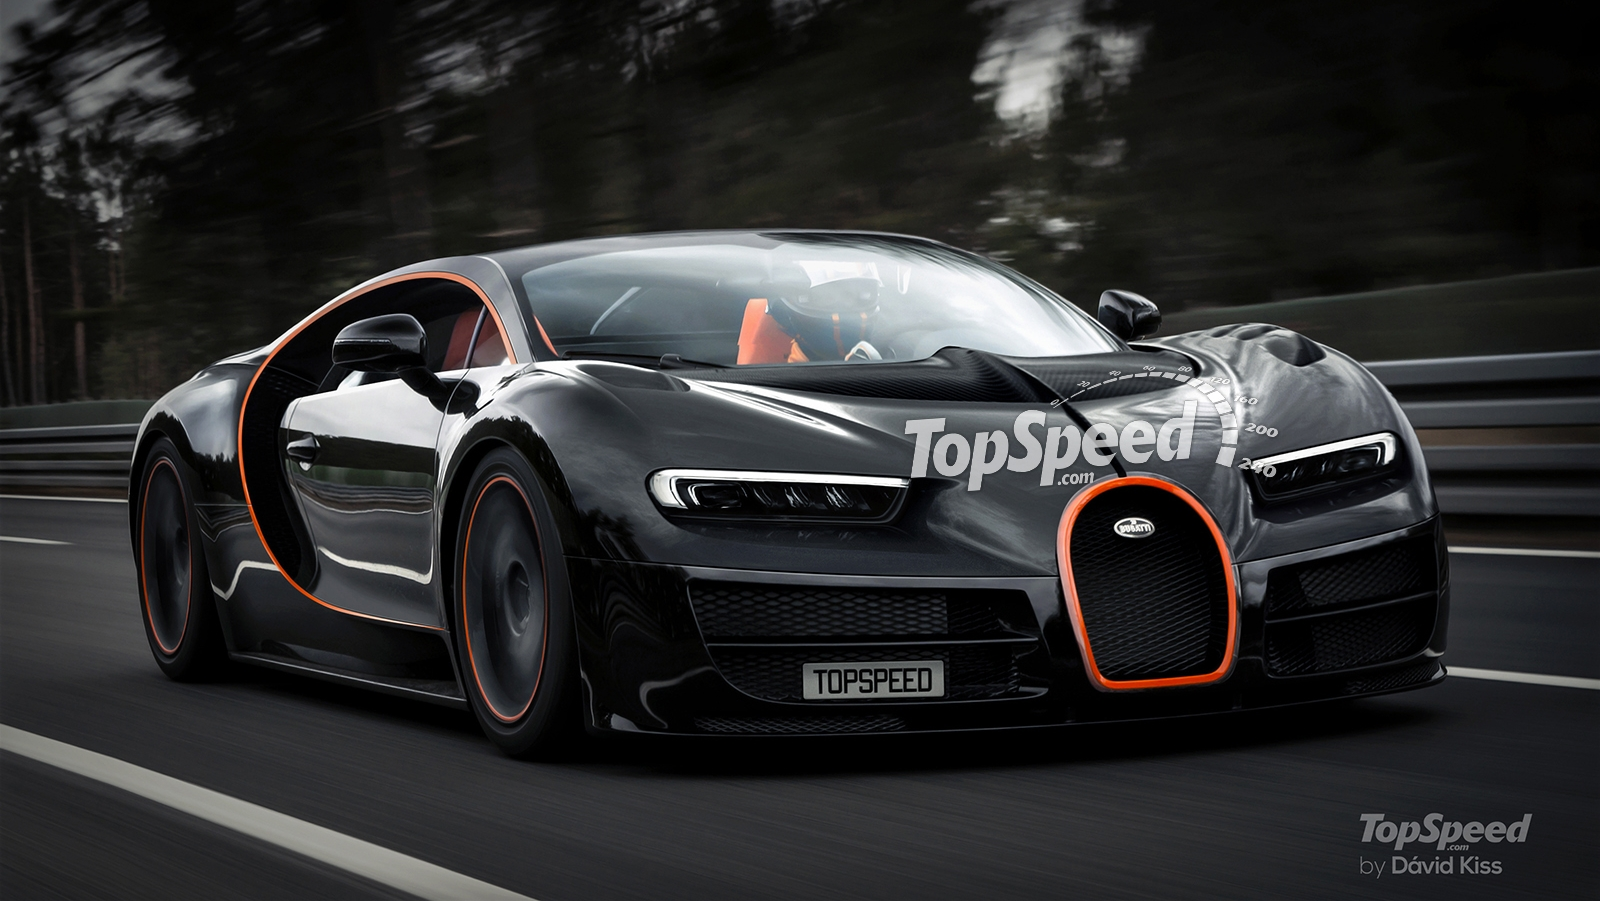 bugatti chiron sport 2018 with Picture648628 on Picture648628 in addition Bugatti Chiron Lego Kit Launches With 3599 Parts together with 2019 Chevrolet Camaro Gets Questionable Refresh further 5 8m Bugatti Divo Revealed At Quail Which Could Be Actually A Performance Variant Of The Gran Turismo together with Bugatti Grand Sport L Or Blanc 1837345.